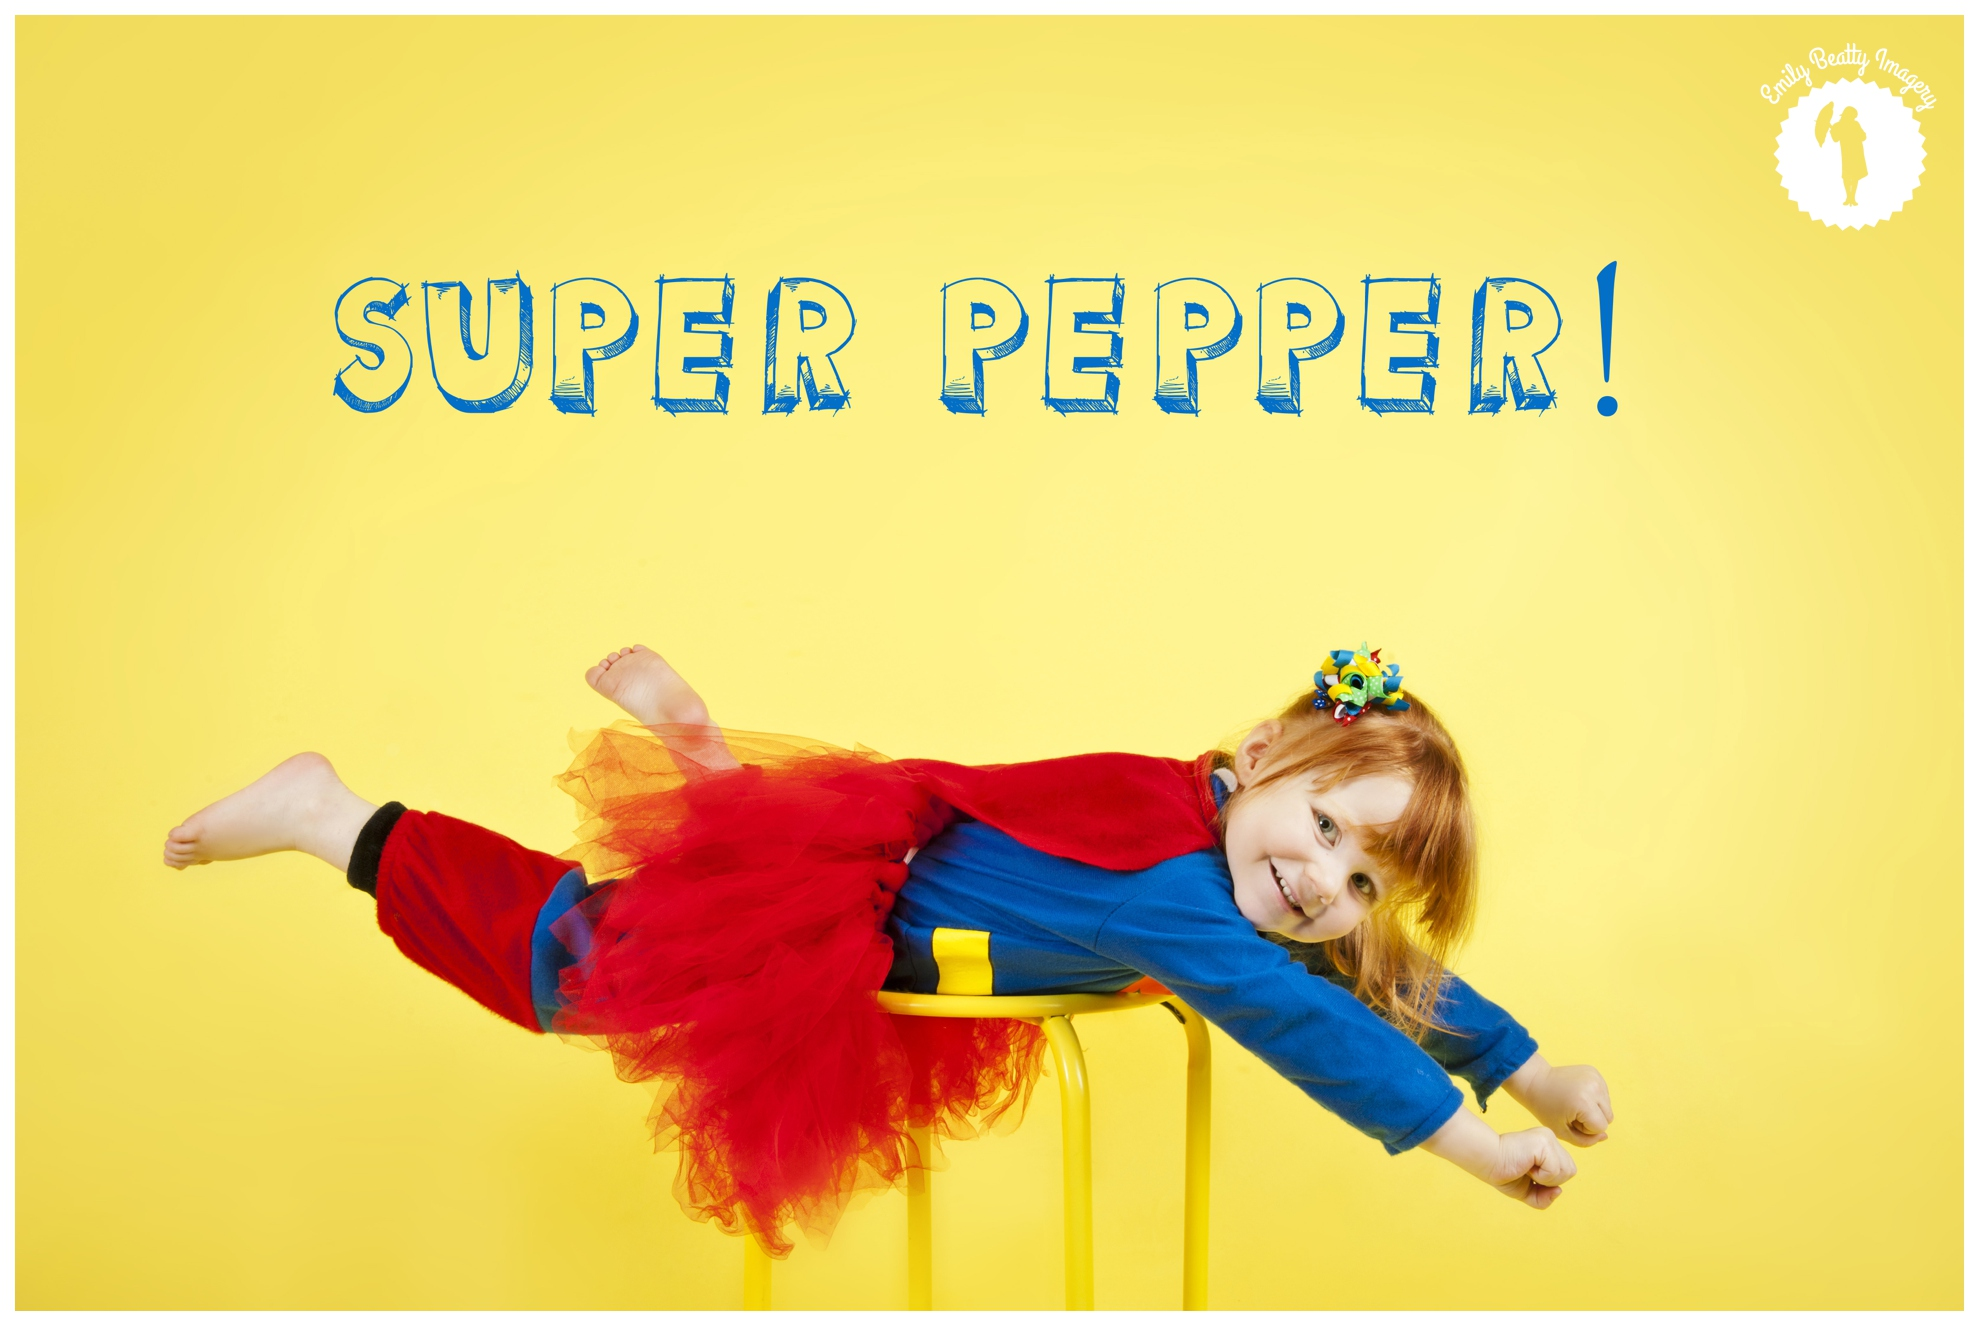 Emily_Beatty_0948Super_Pepper_edittext_*web